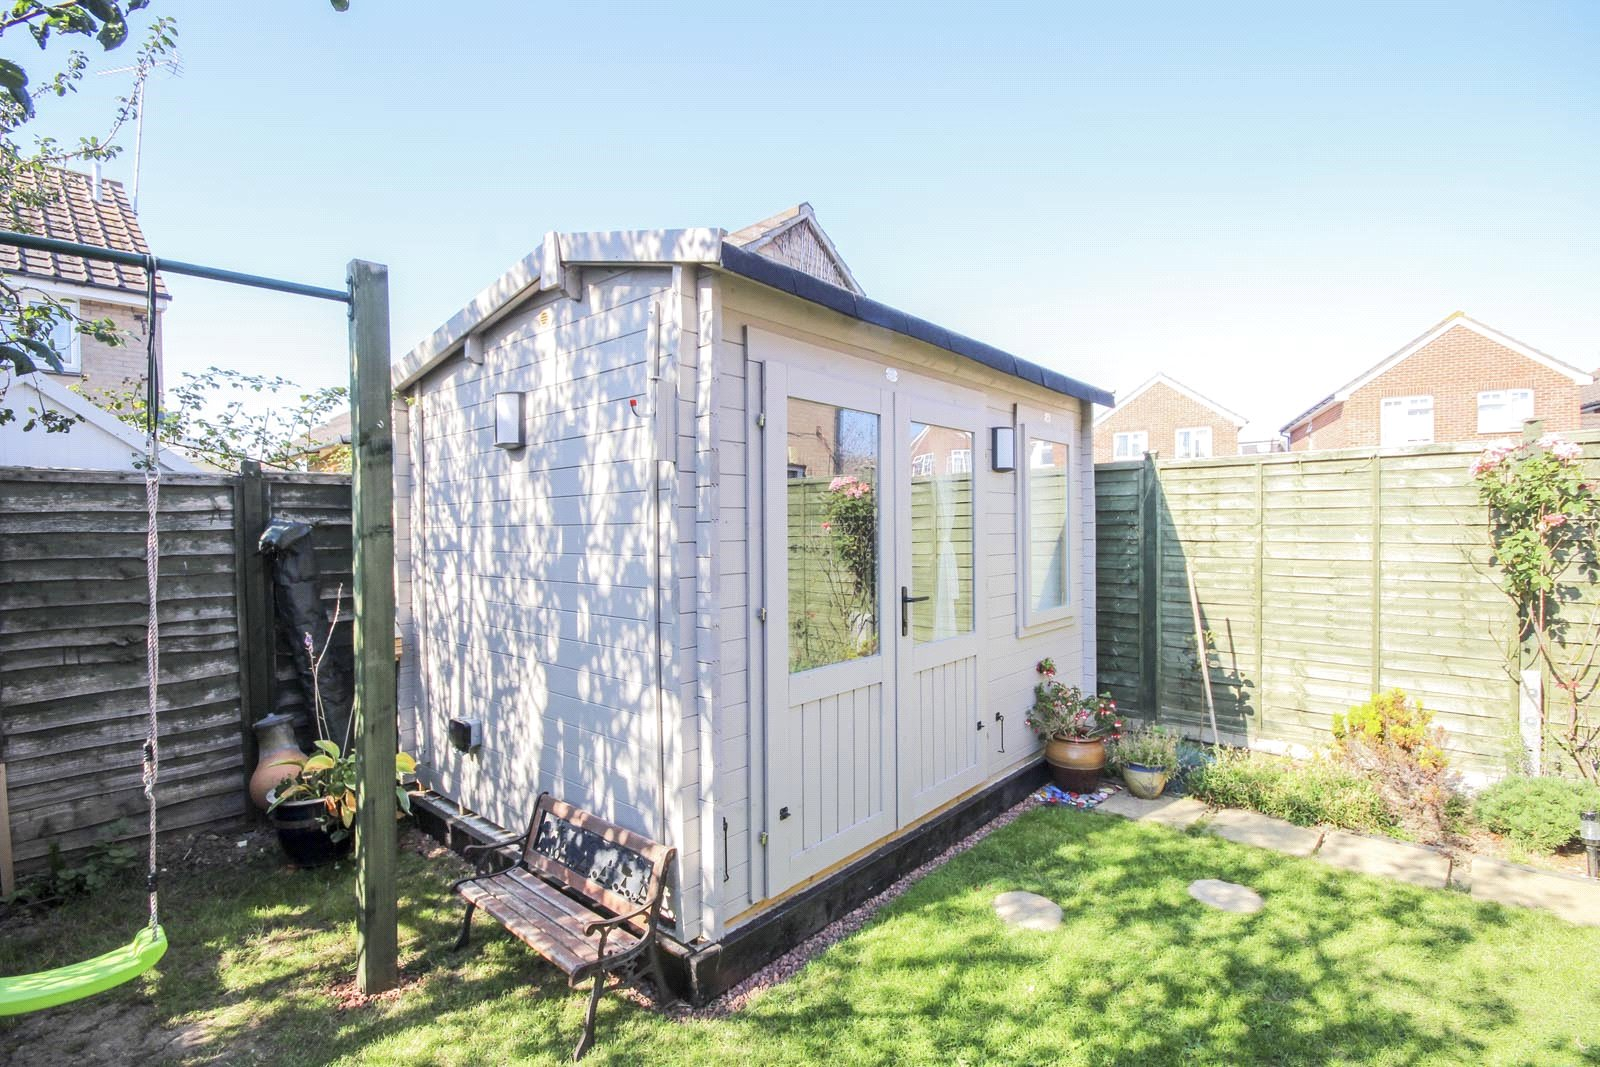 3 bed house for sale in Littlehampton, BN17 6RJ  - Property Image 9